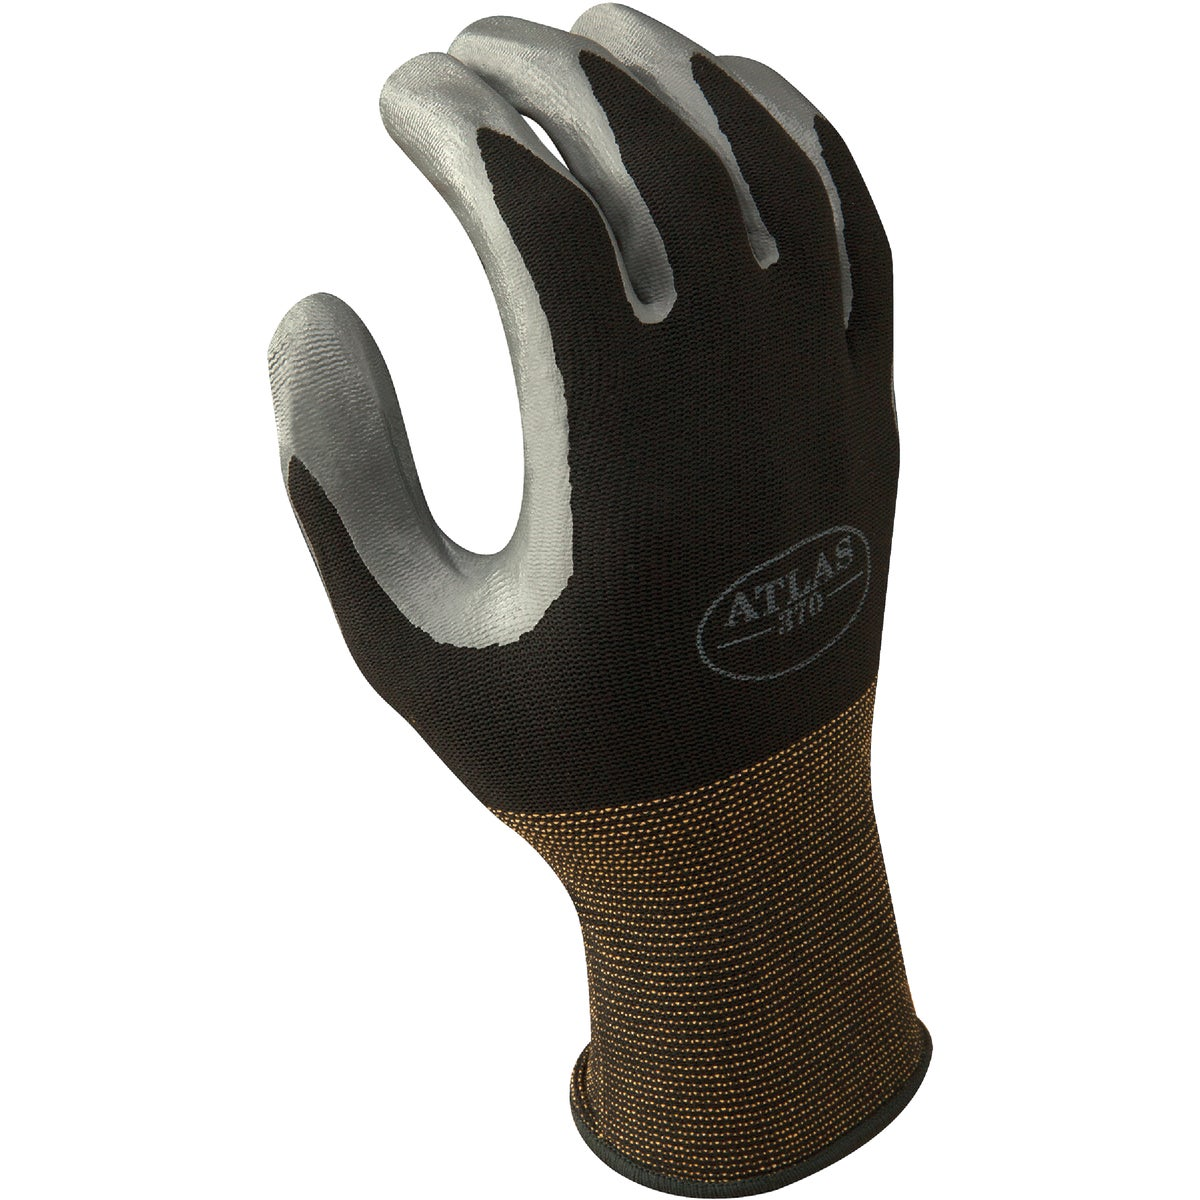 MED BLK NITRILE GLOVE - 370BM-07.RT by Showa Best Glove